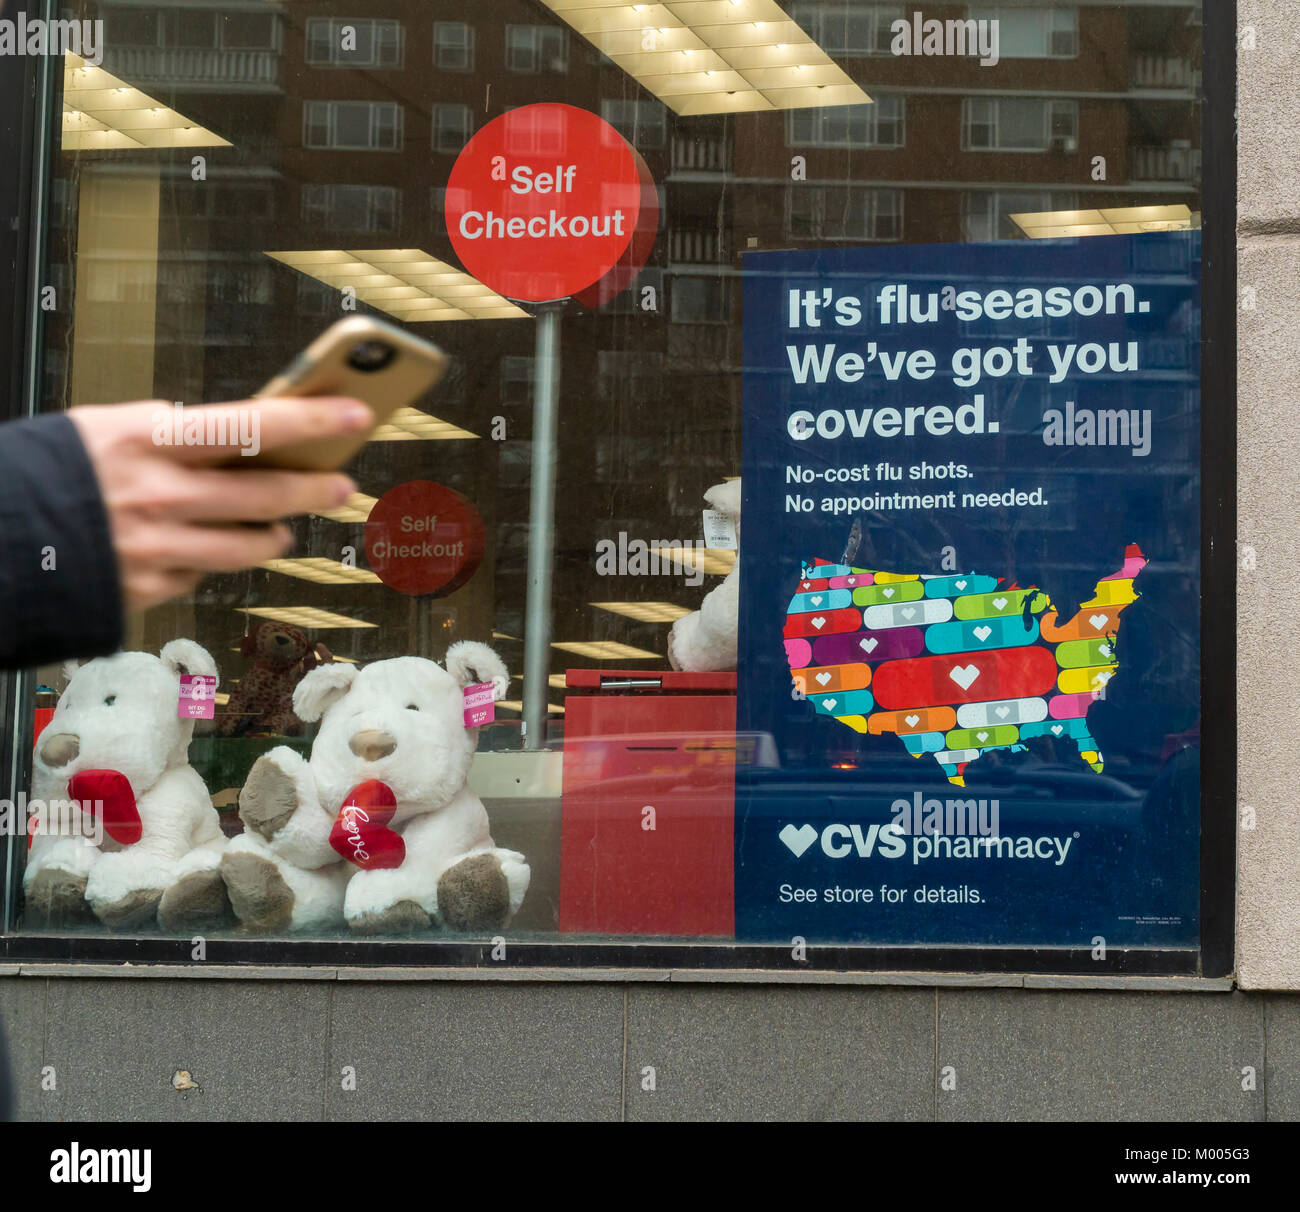 A sign advertises that flu shots are available at a CVS Health drugstore in New York on Tuesday, January 16, 2018. - Stock Image